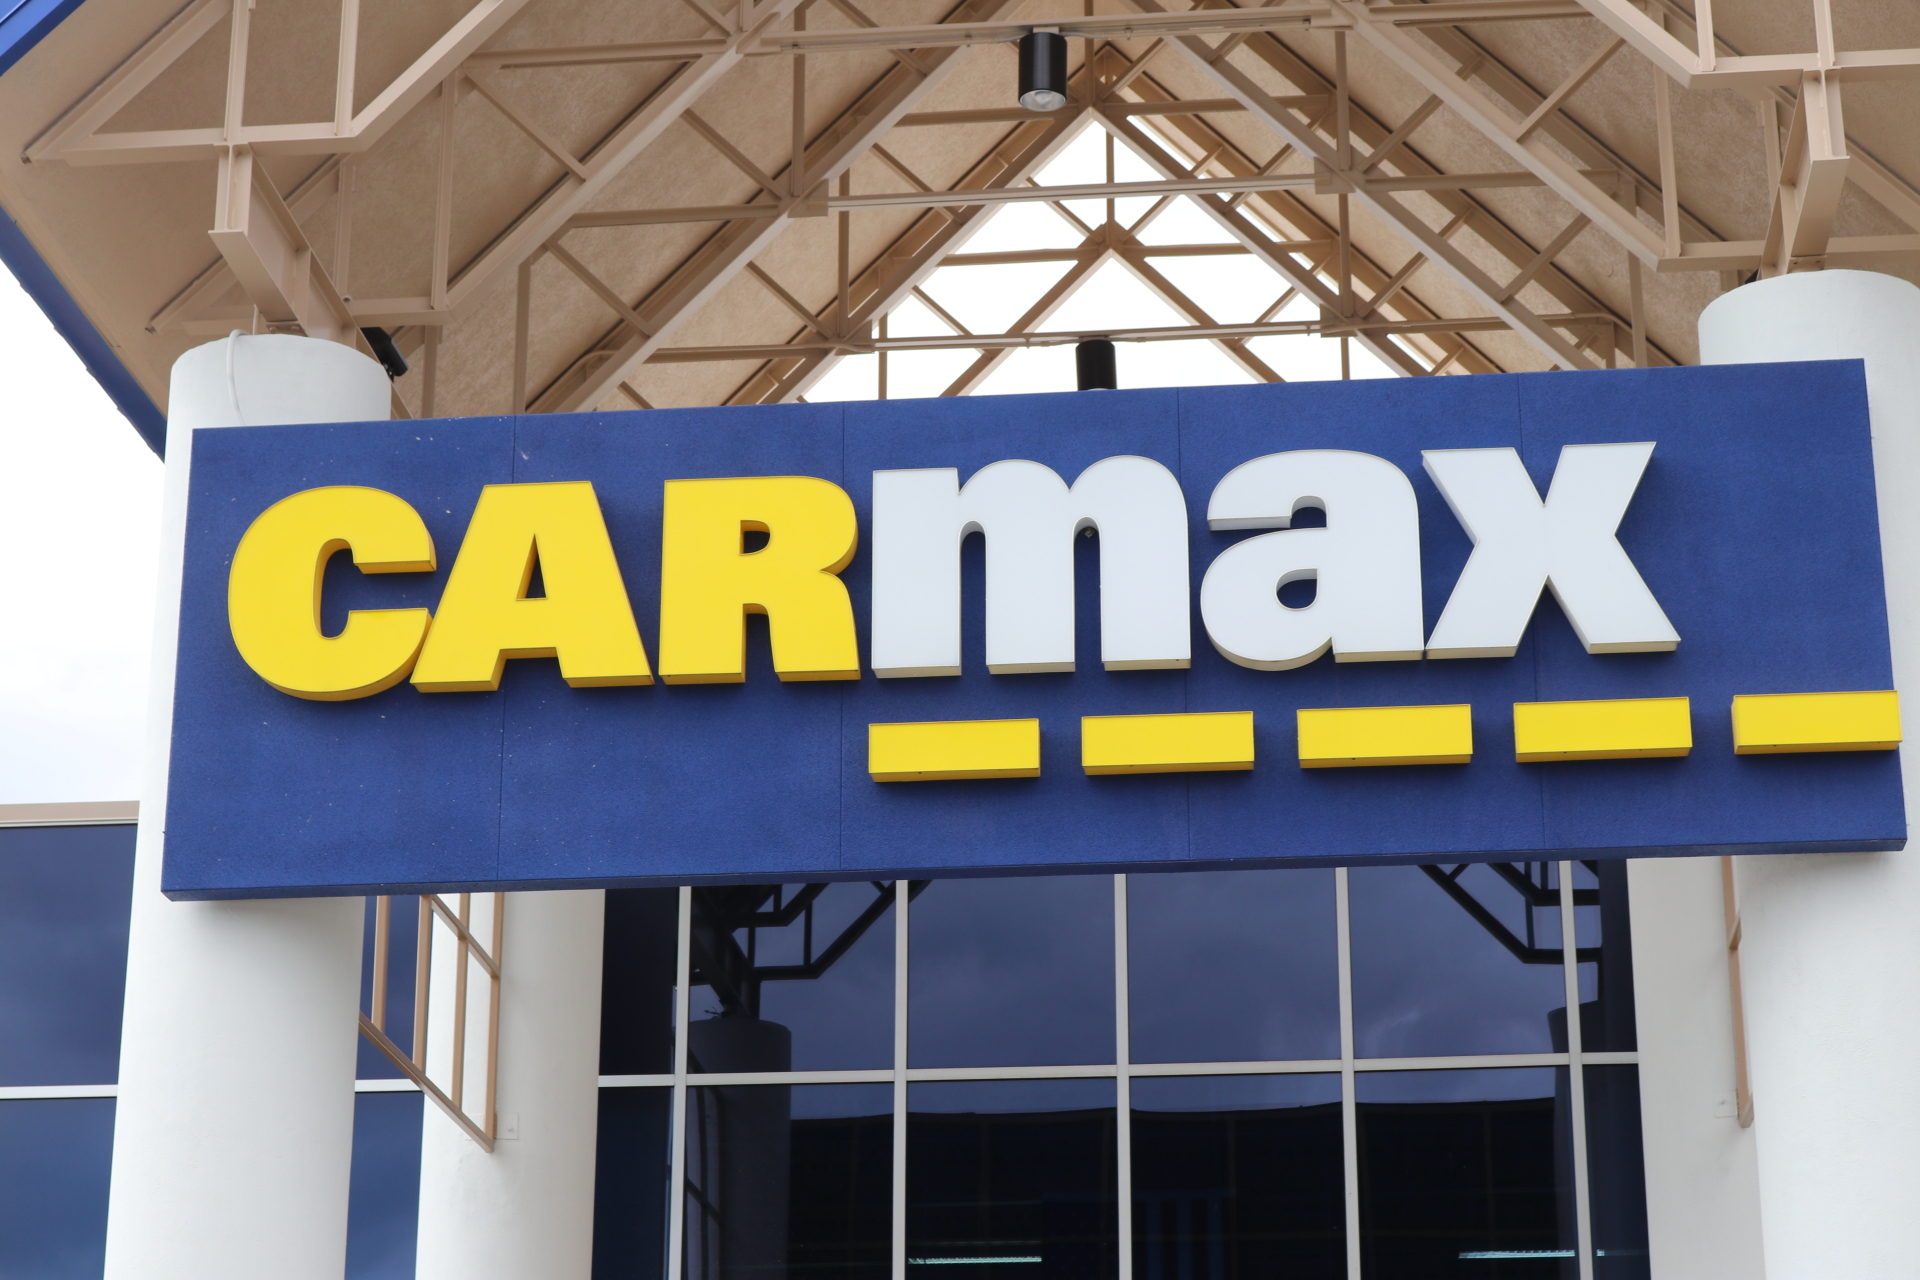 Carmax Photo Booth